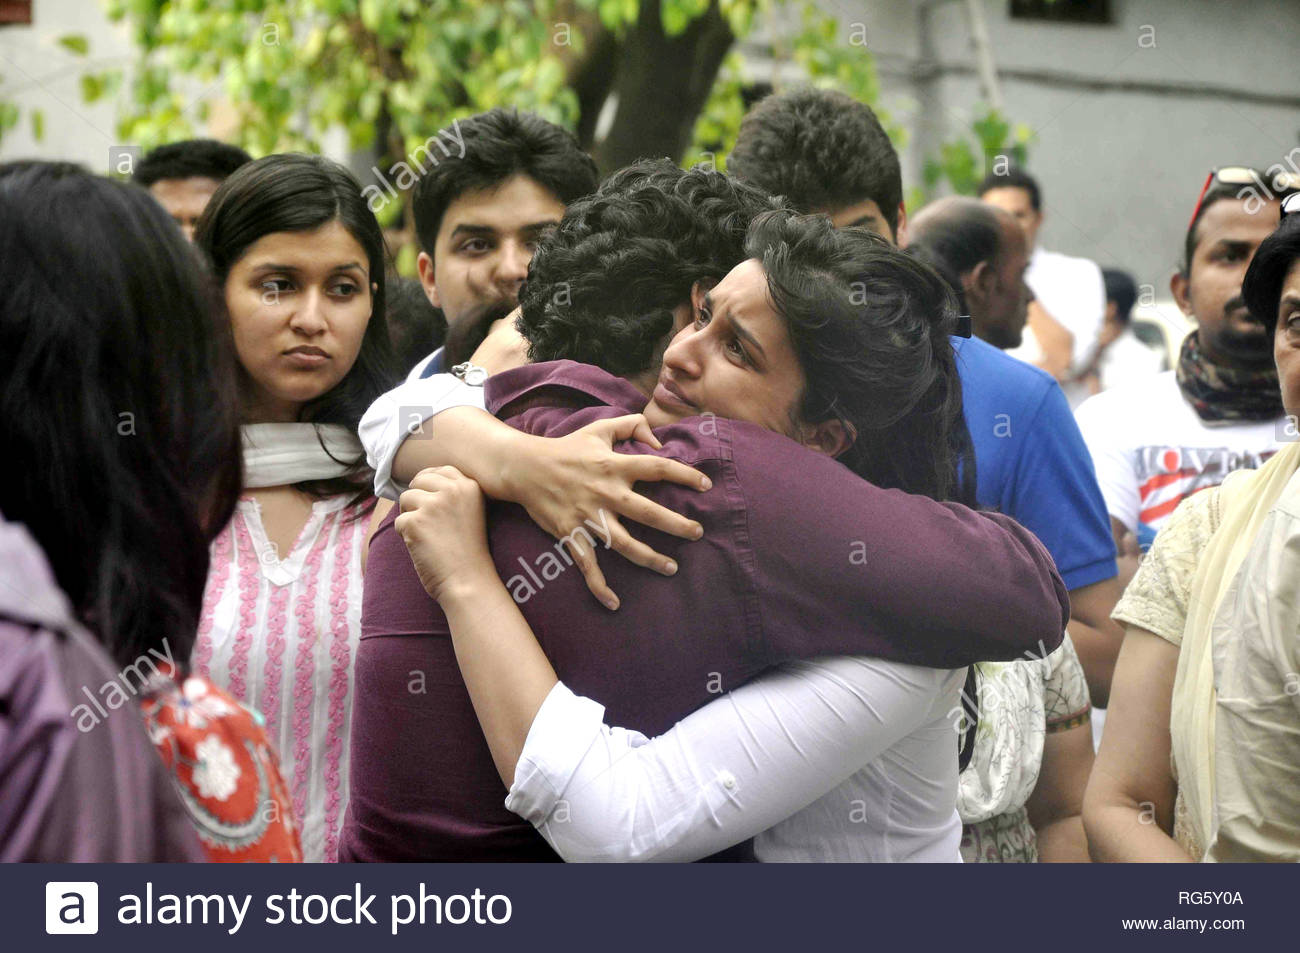 Bollywood  actress Parineeti Chopra being consoled on the death of her uncle (Priyanka Chopra's father) Ashok Chopra who was cremated in Mumbai, India on June 10, 2013. Lt Col Ashok Chopra, a retired Army doctor, was undergoing cancer treatment for the past few years. (Deven Lad) - Stock Image